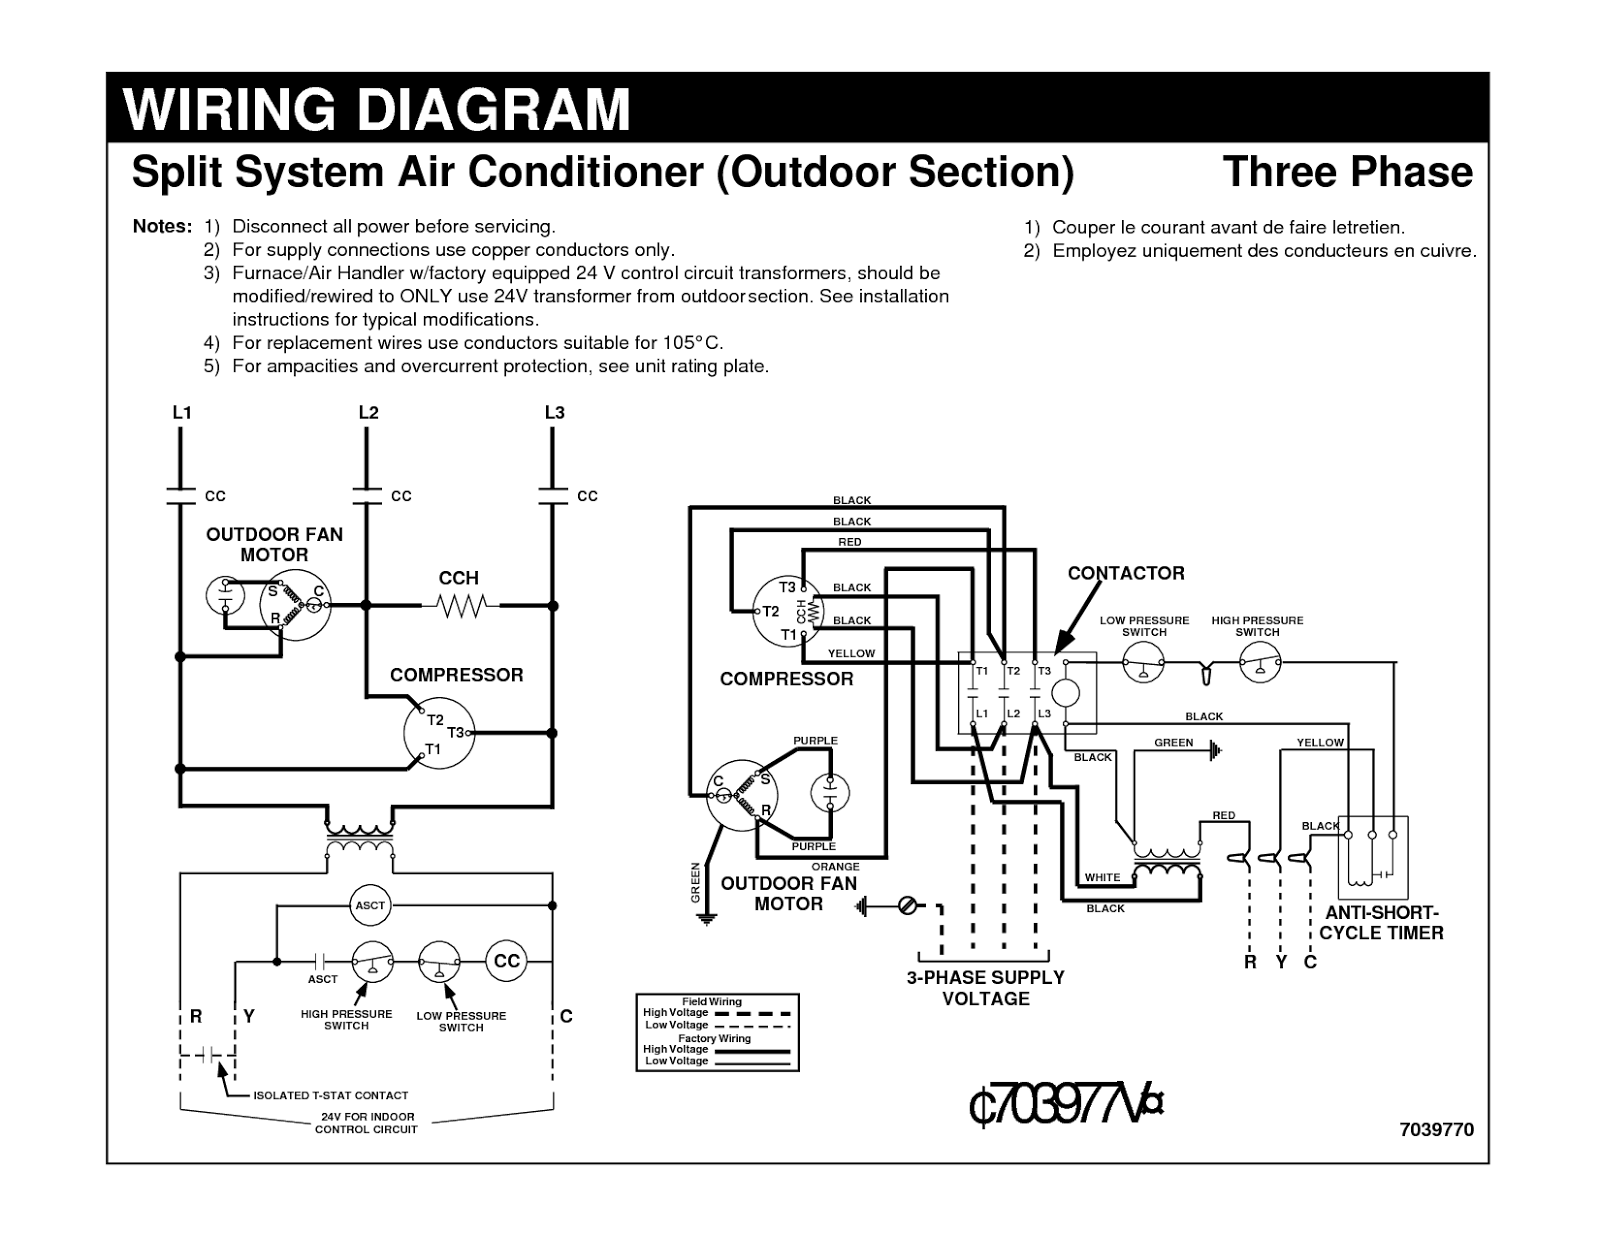 hvac wiring diagram electrical wiring diagrams for air conditioning systems part one fig 1